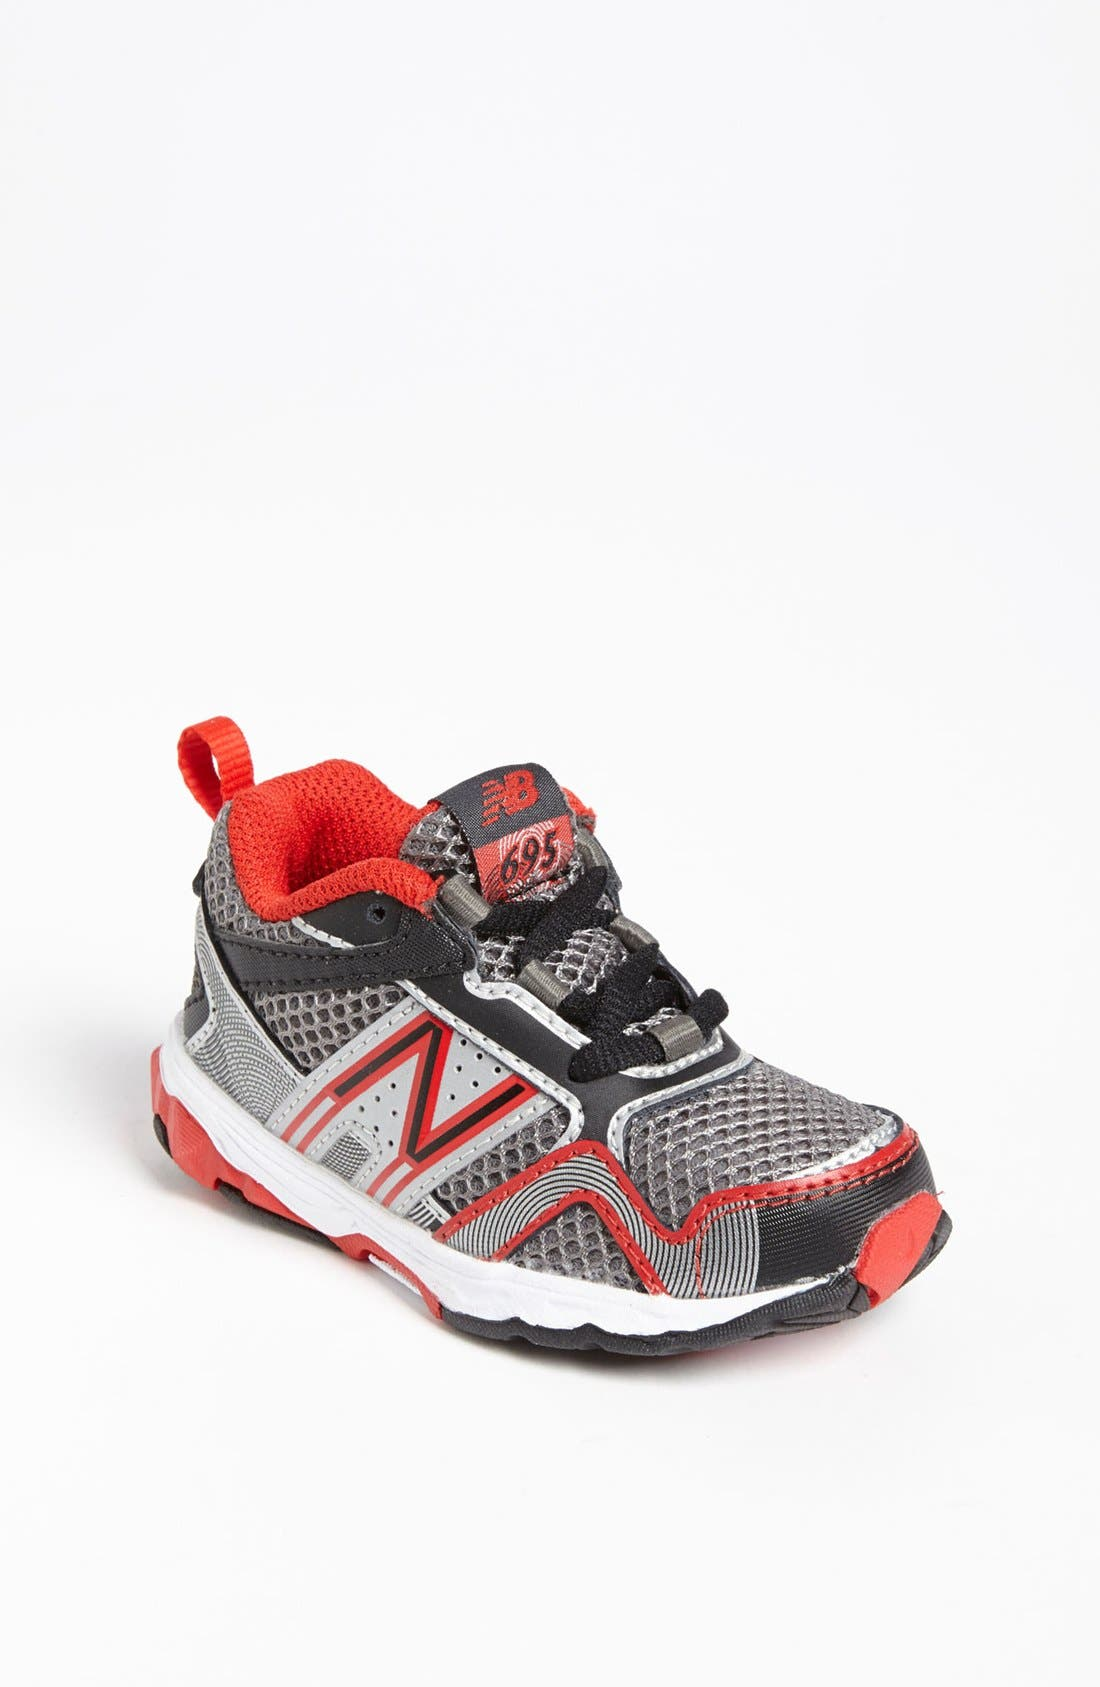 Alternate Image 1 Selected - New Balance '695' Sneaker (Baby, Walker & Toddler) (Online Only)